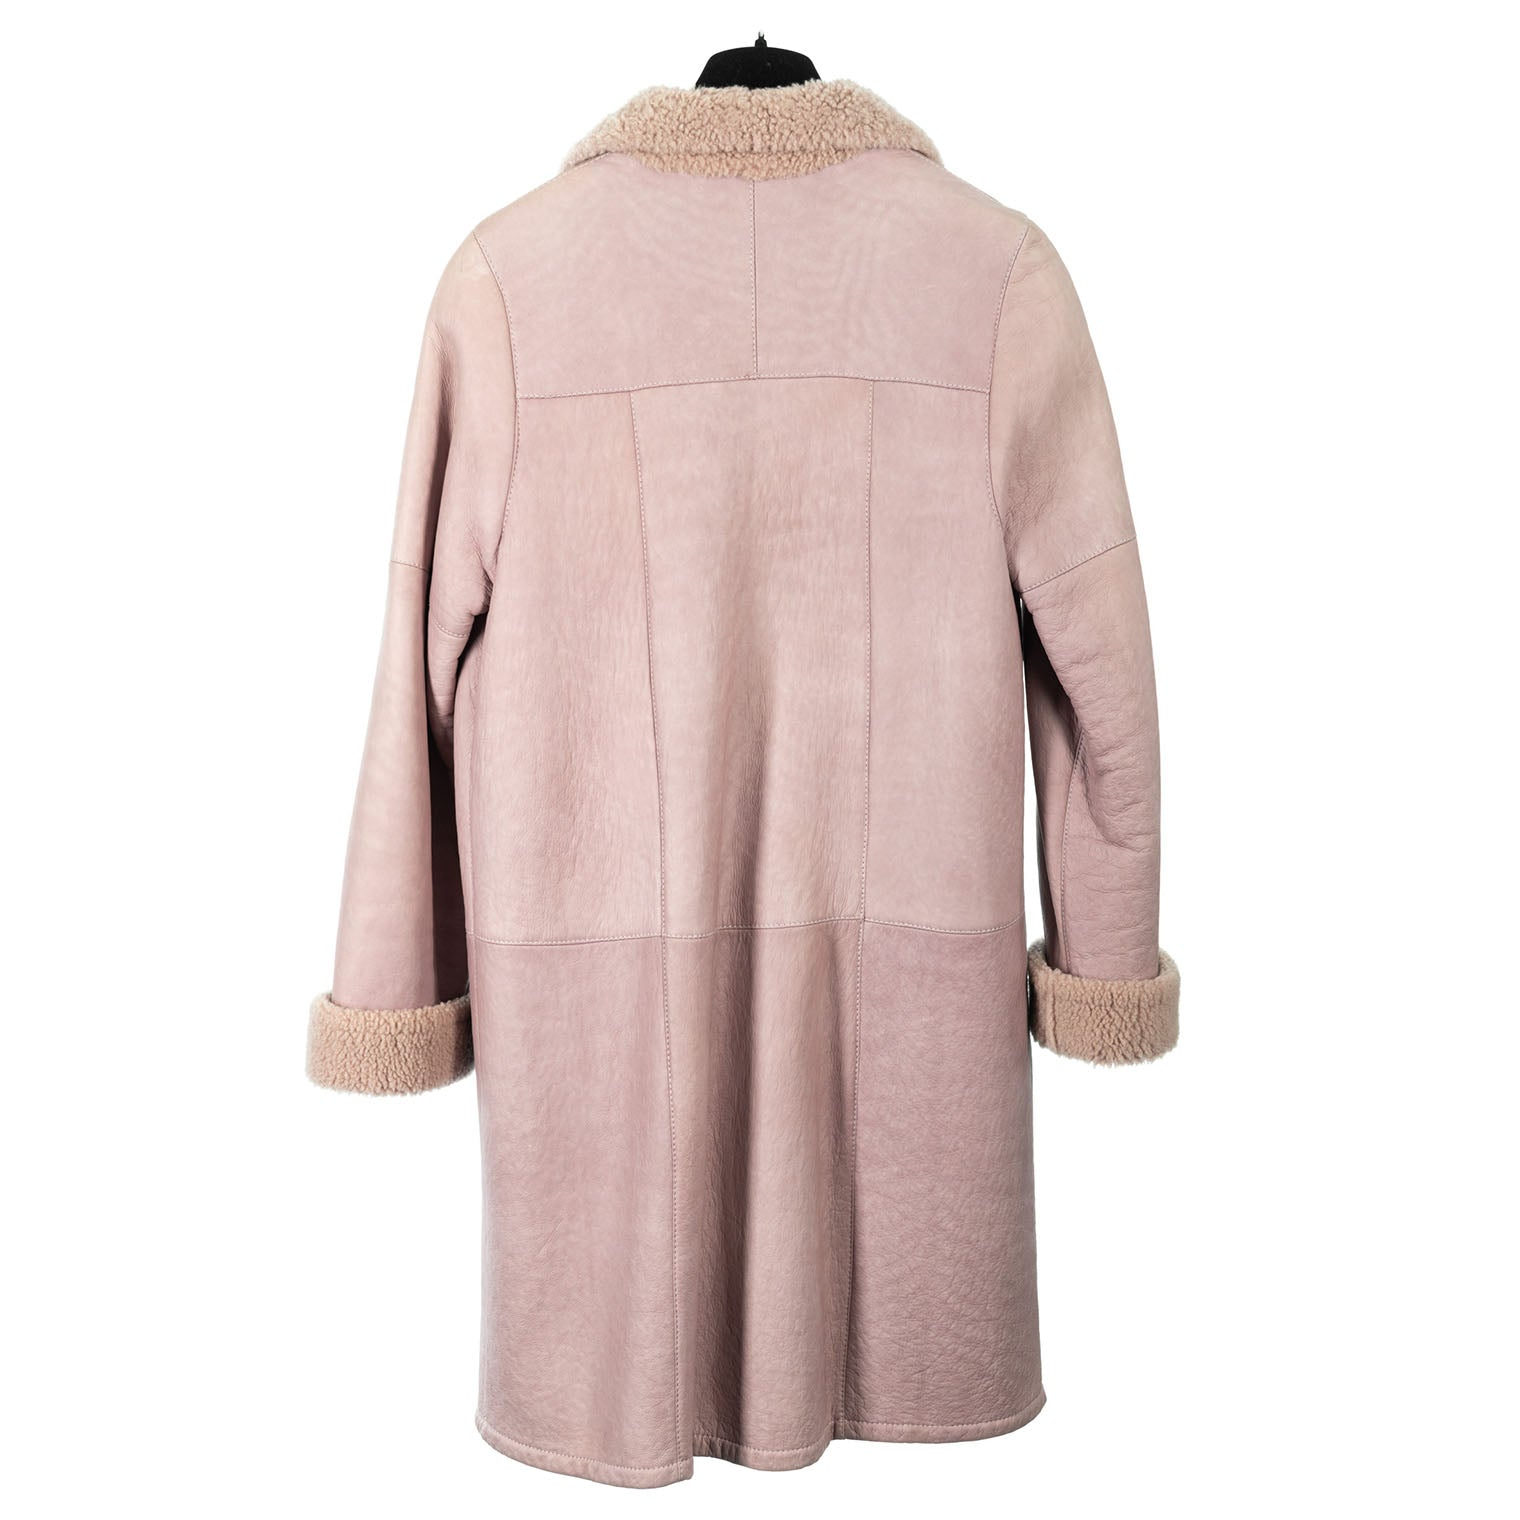 Dusty Rose Curly Lamb Short Coat